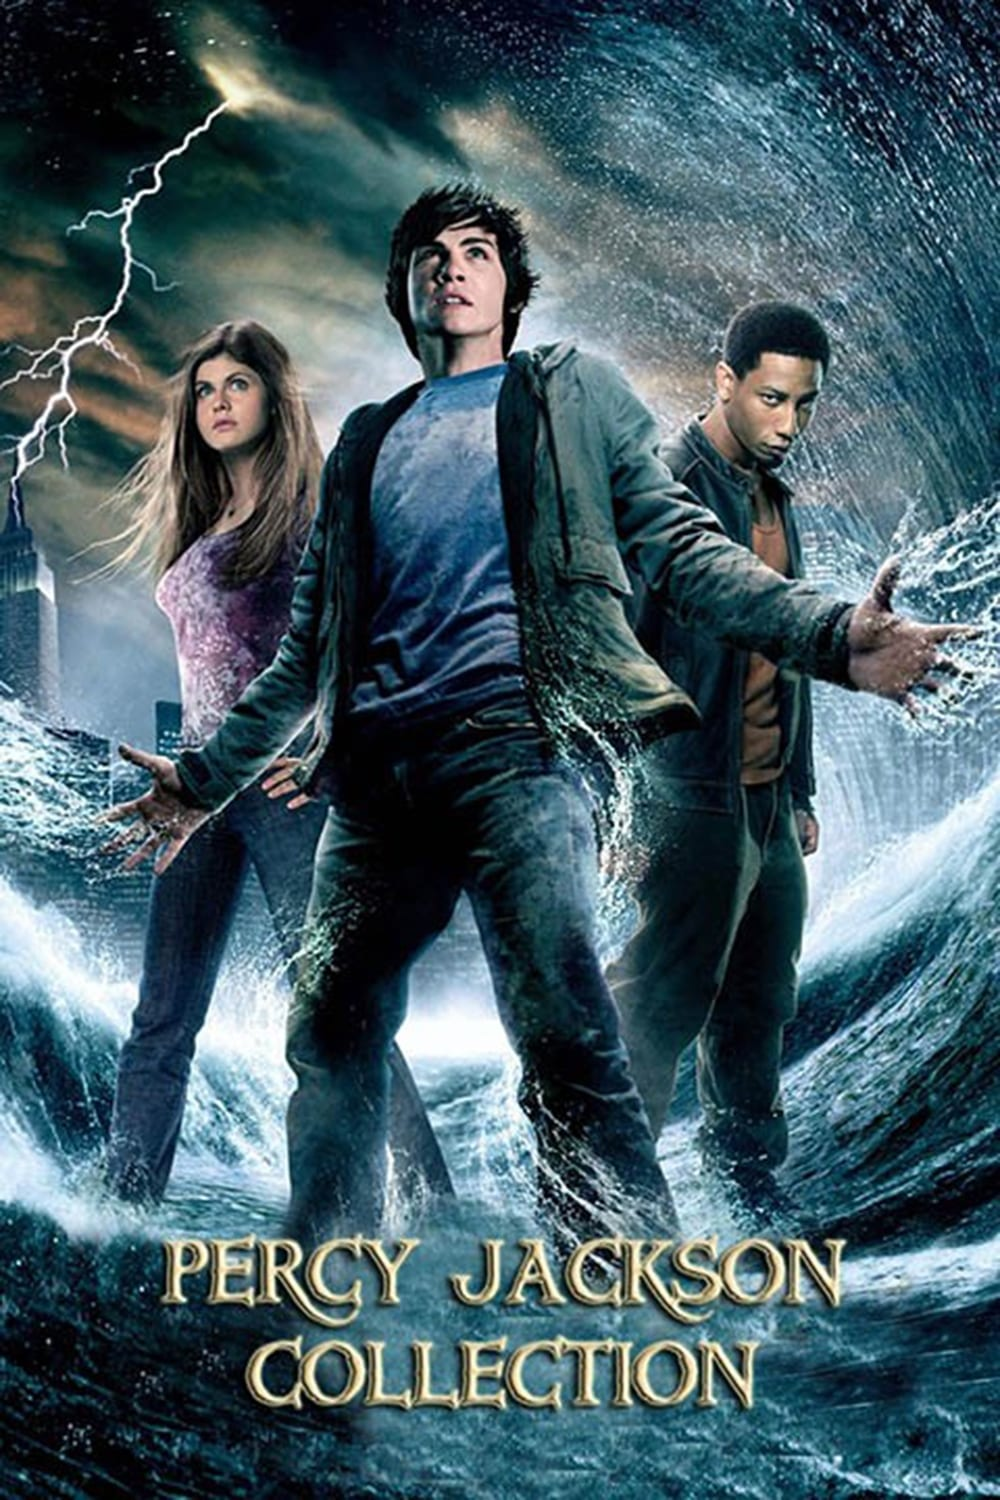 all movies from percy jackson collection saga are on